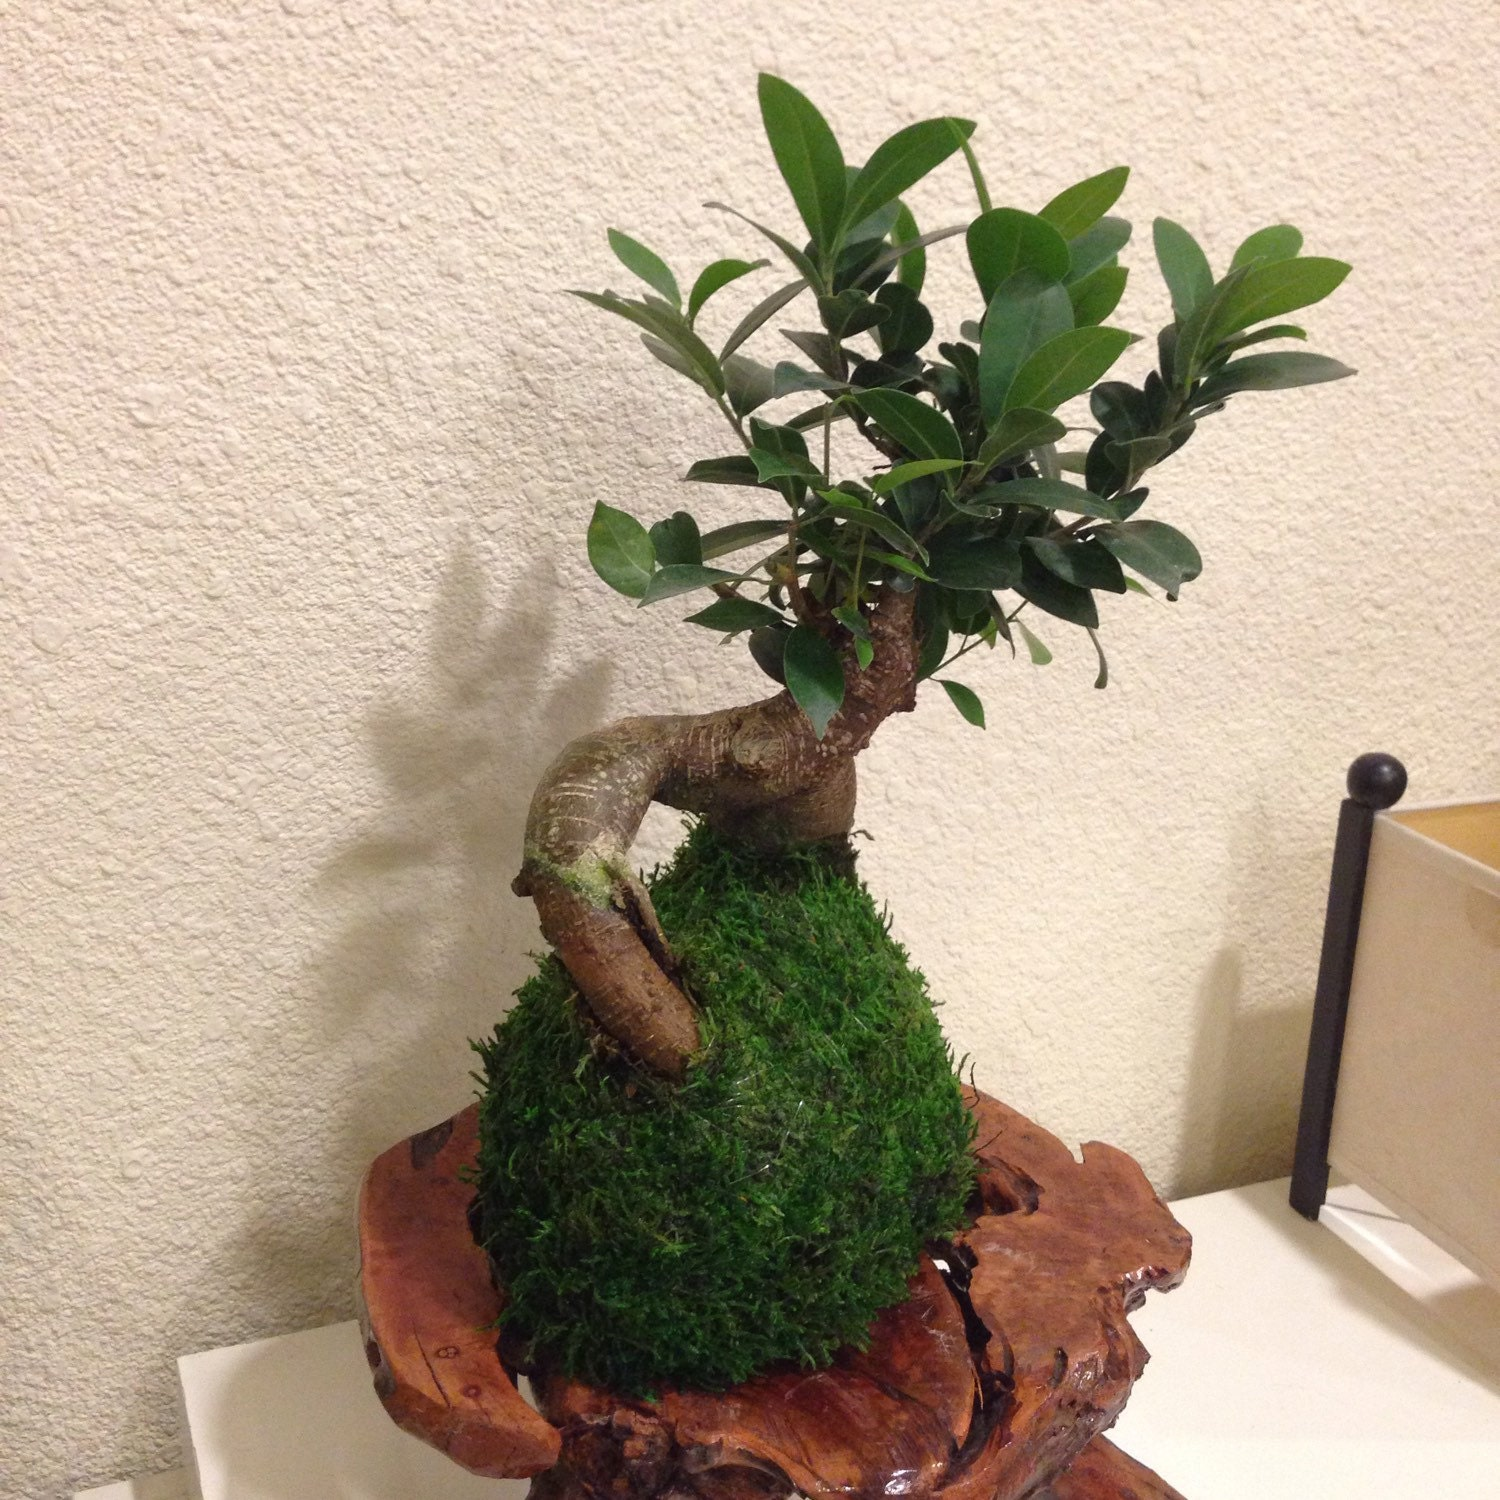 kokedama bonsai moss ball ginseng ficus by kodamaforest on etsy. Black Bedroom Furniture Sets. Home Design Ideas